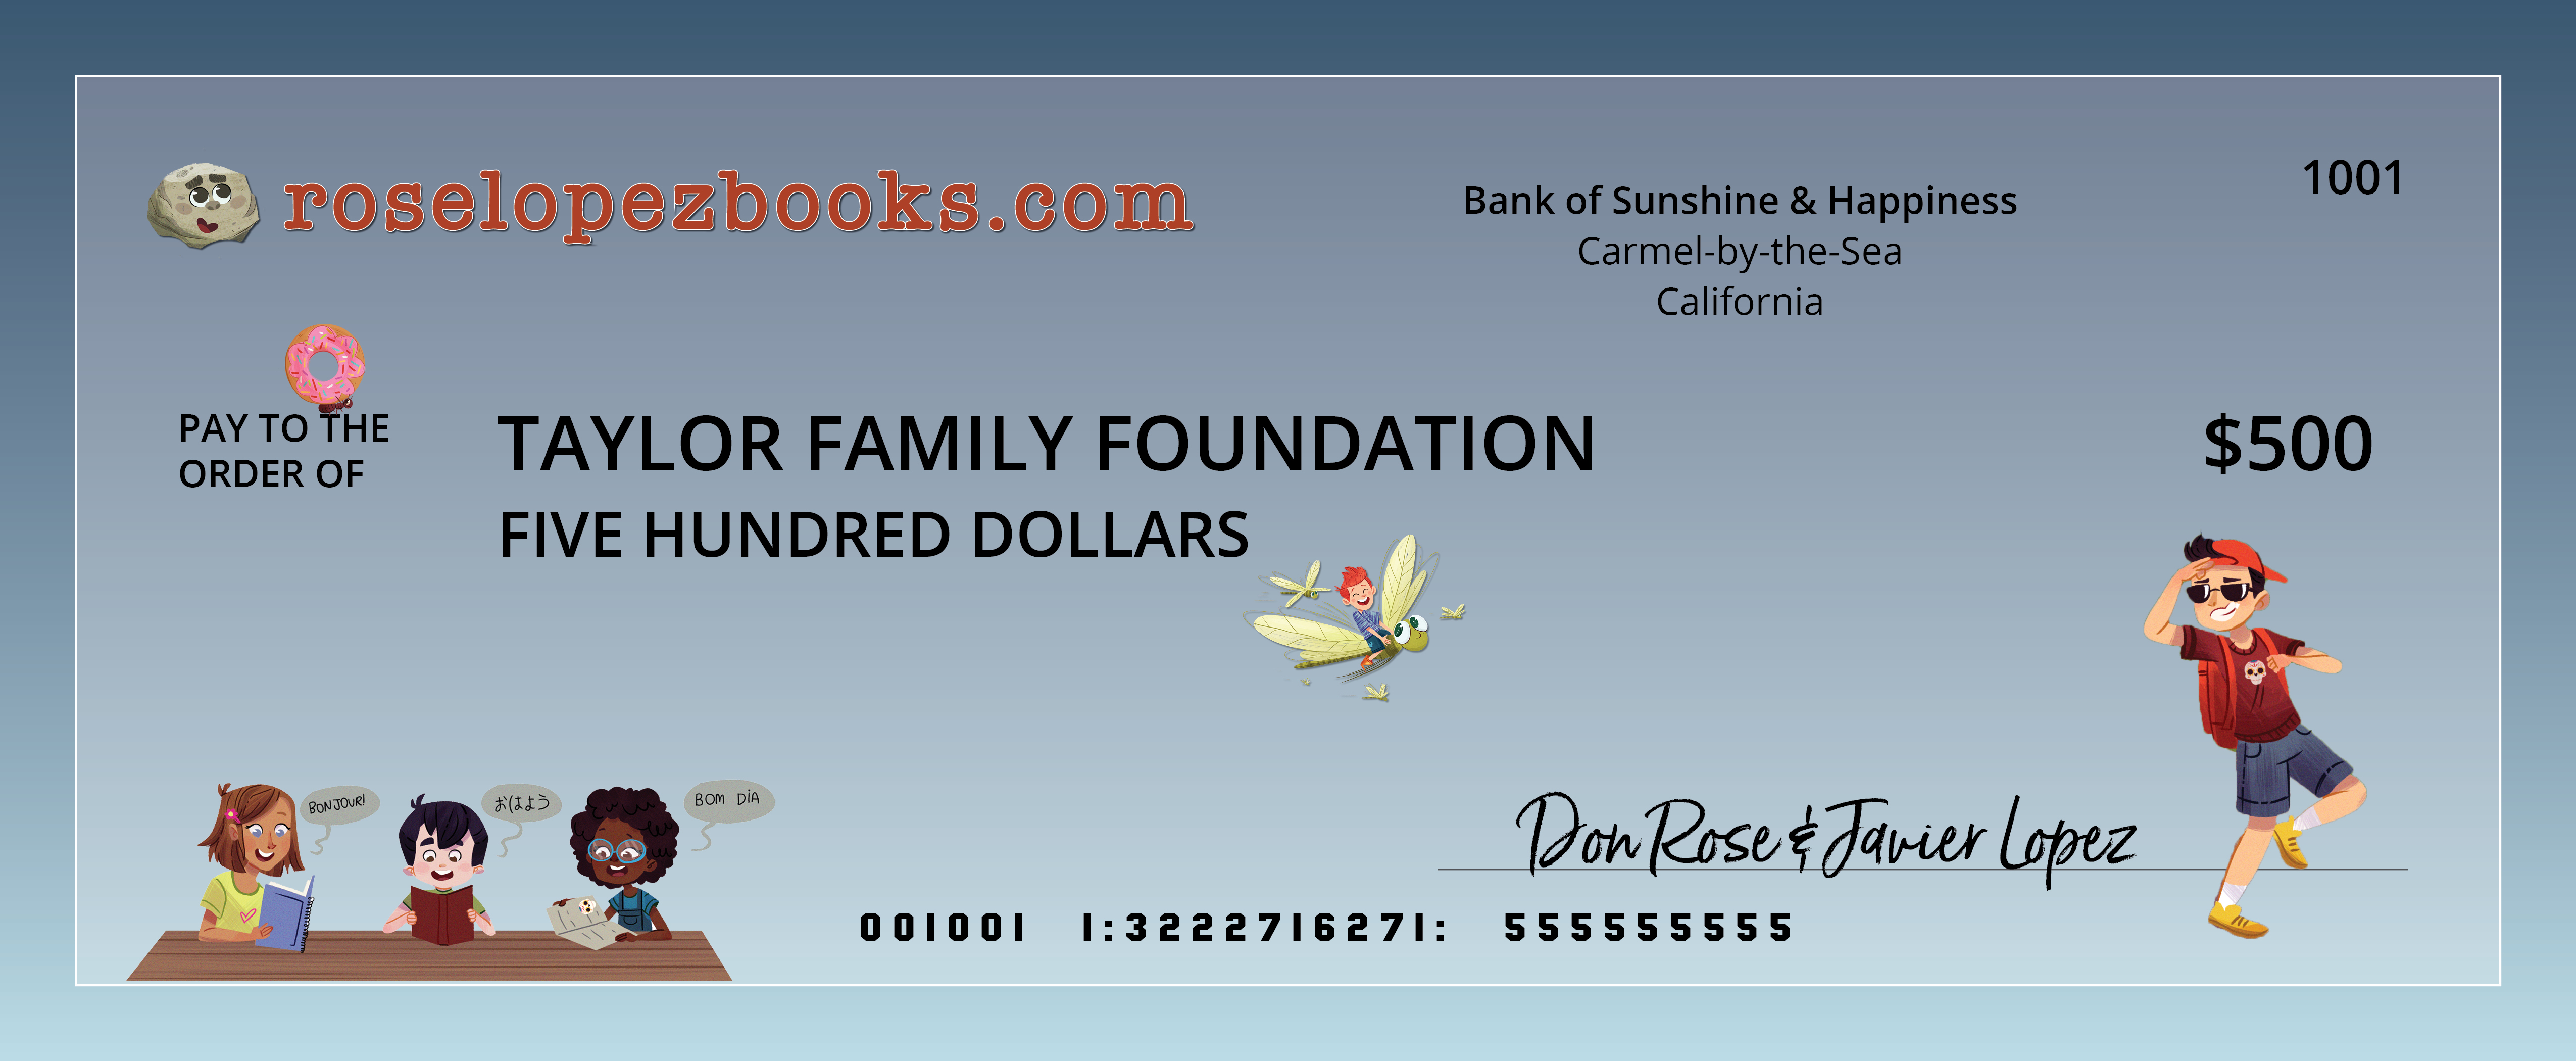 Taylor Family Foundation Check